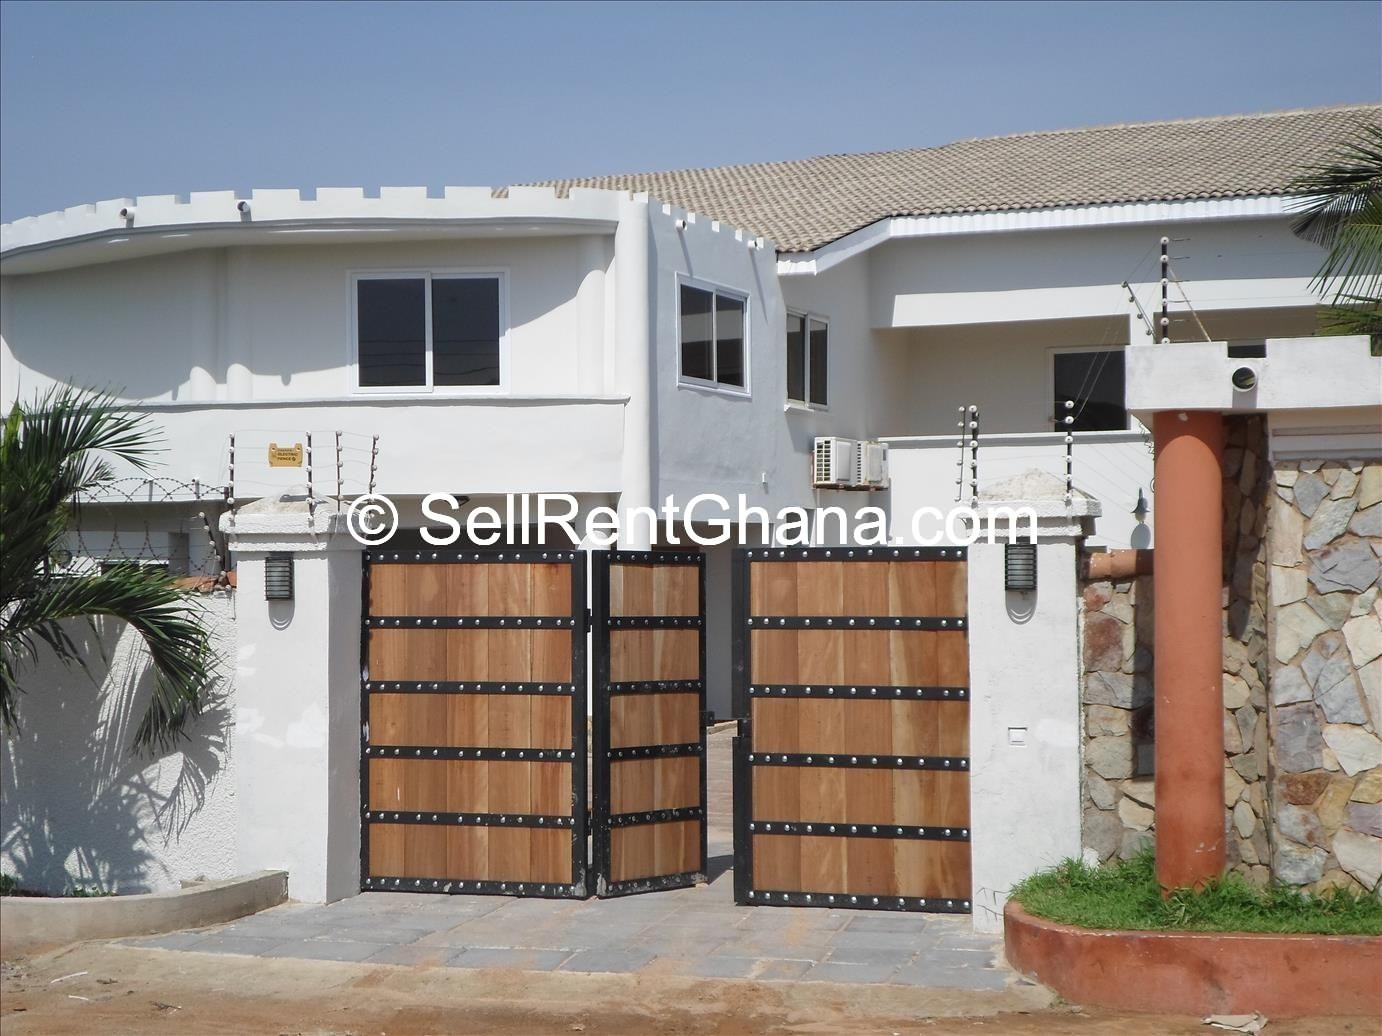 5 bedroom detached house pool to let sellrent ghana for 5 bedroom house with pool